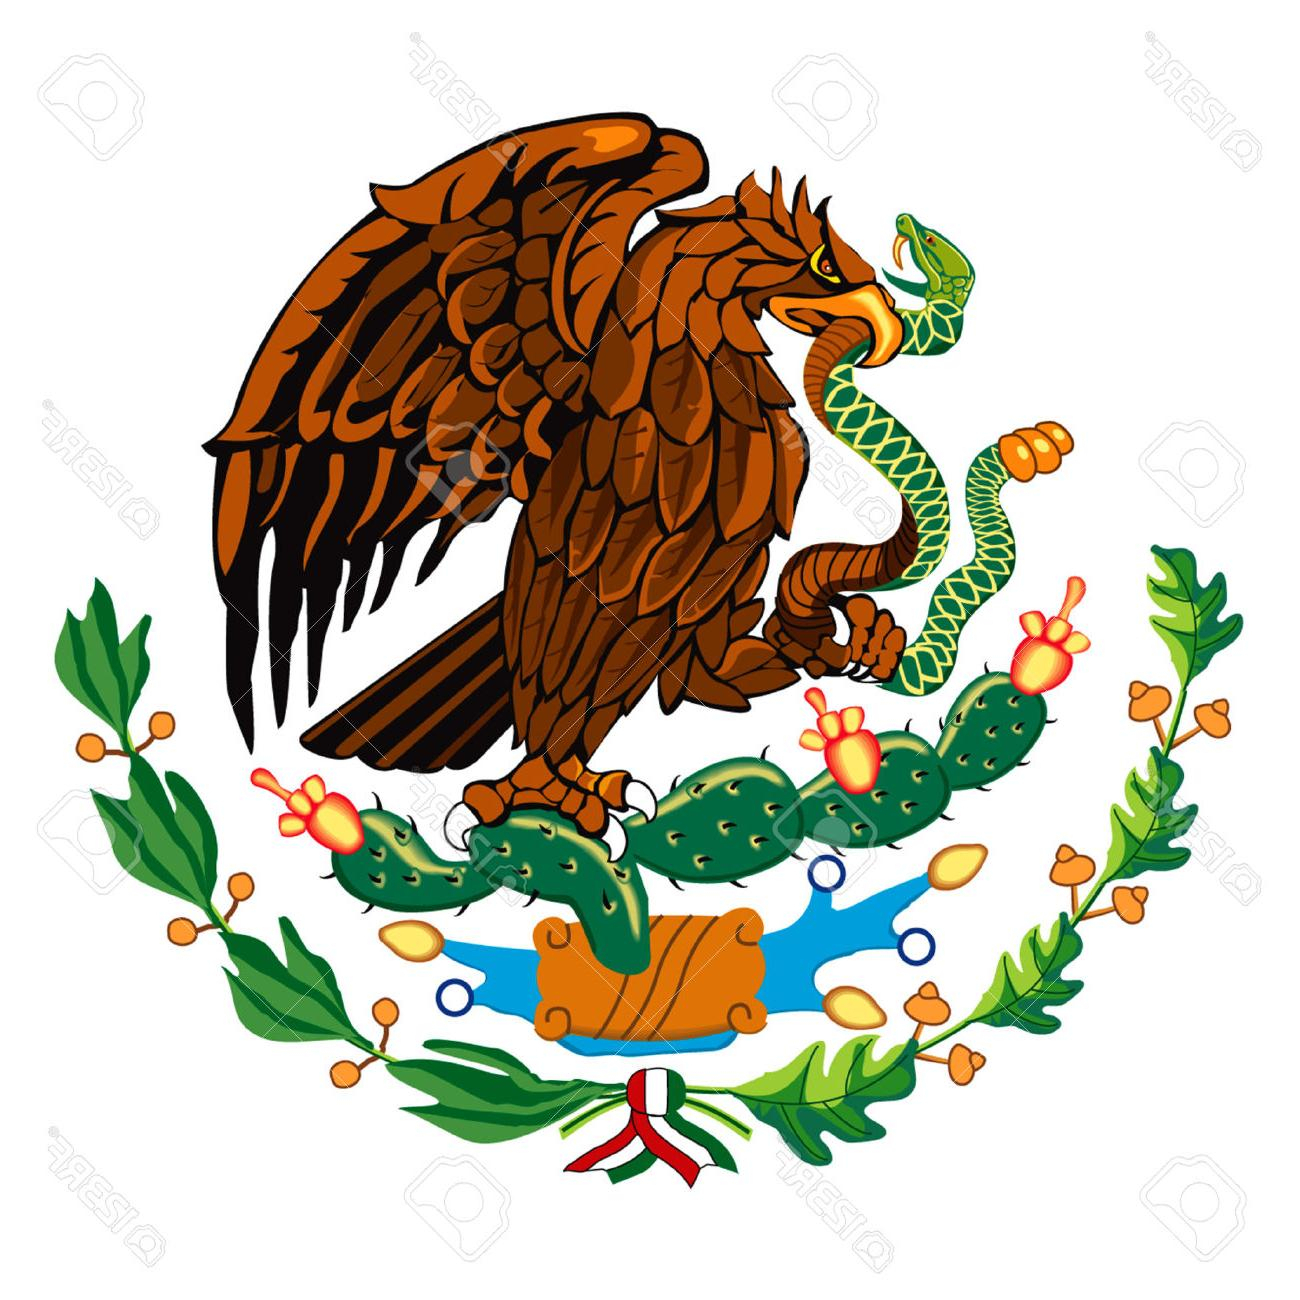 mexican eagle drawing at getdrawings com free for personal use rh getdrawings com